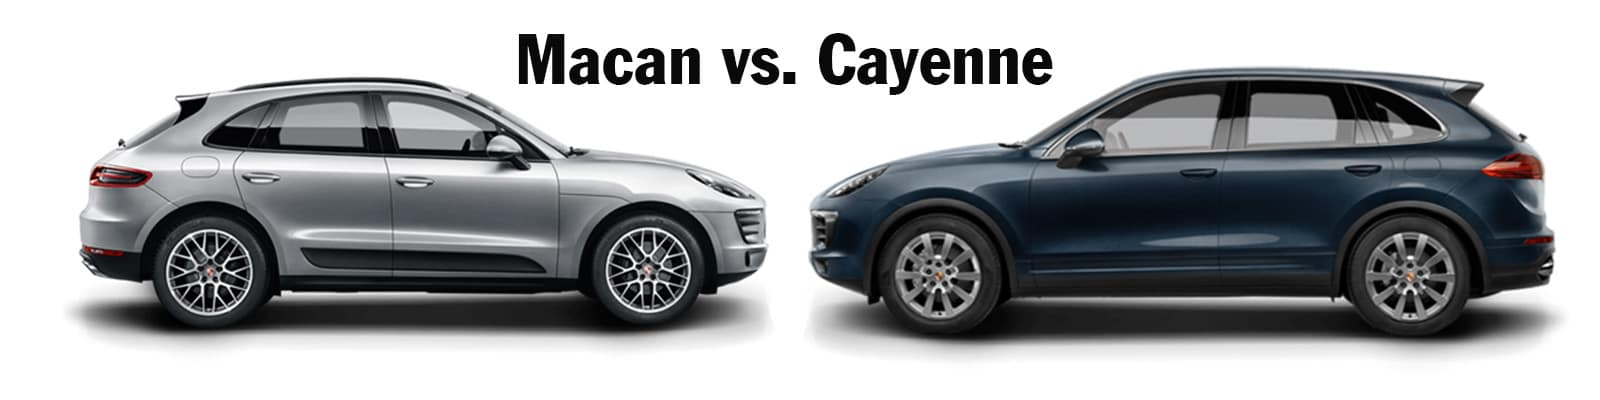 Macan Vs Cayenne Side By Side Comparison Porsche